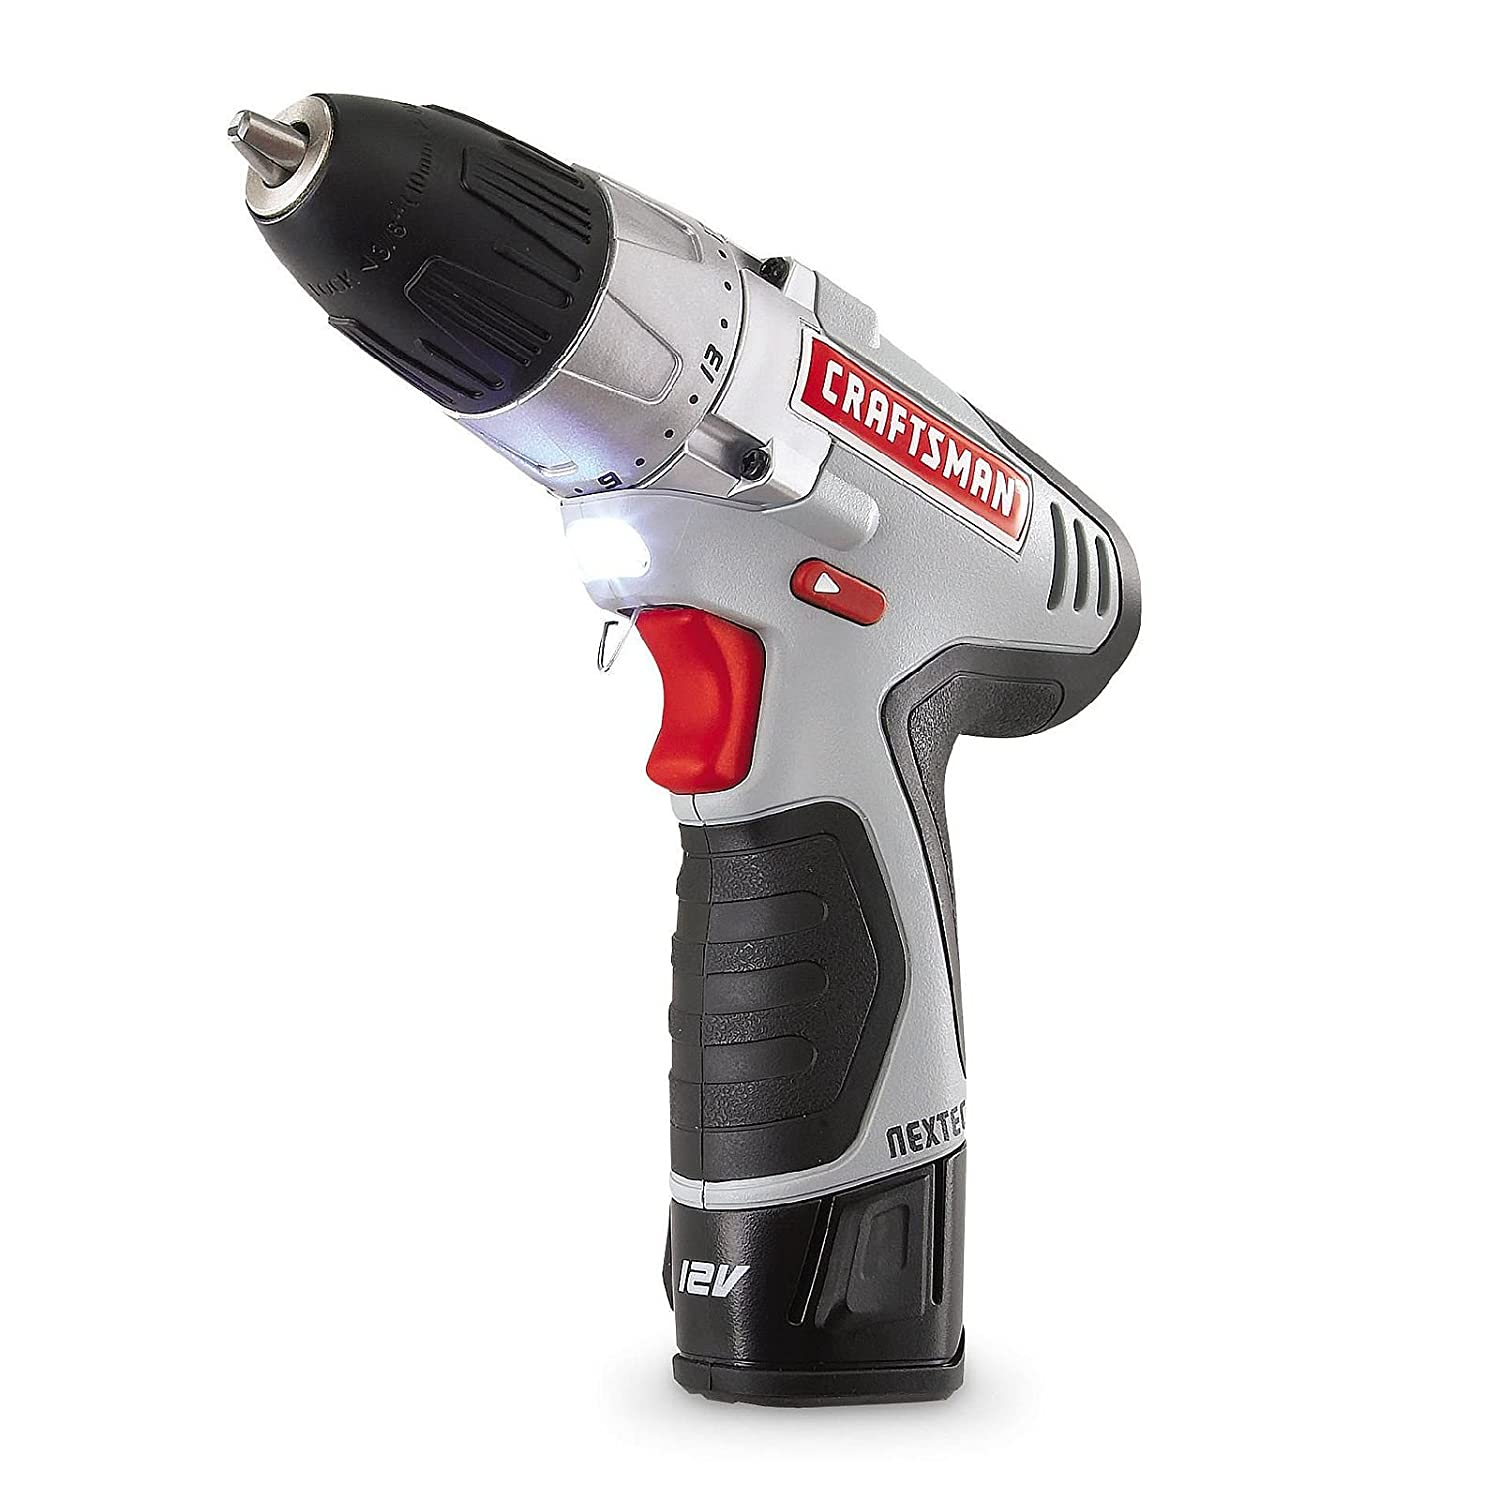 Craftsman N17586 NEXTEC 12.0V Lithium Ion Drill Driver Kit with Ergonomic Handle and ENERGY STAR Qualified